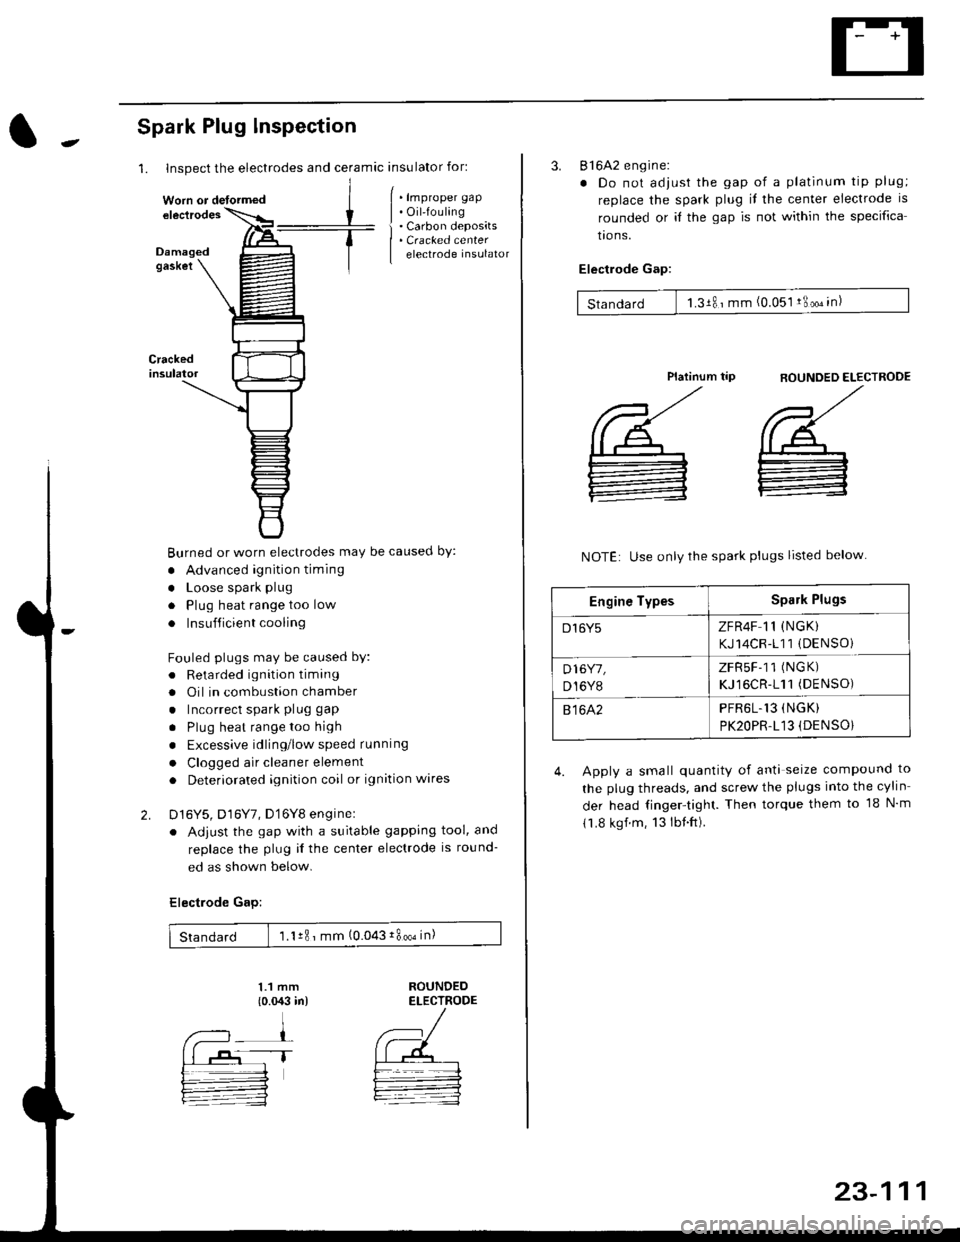 w960_6068 1580 honda civic 1997 6 g workshop manual d16y7 distributor wiring diagram at gsmx.co